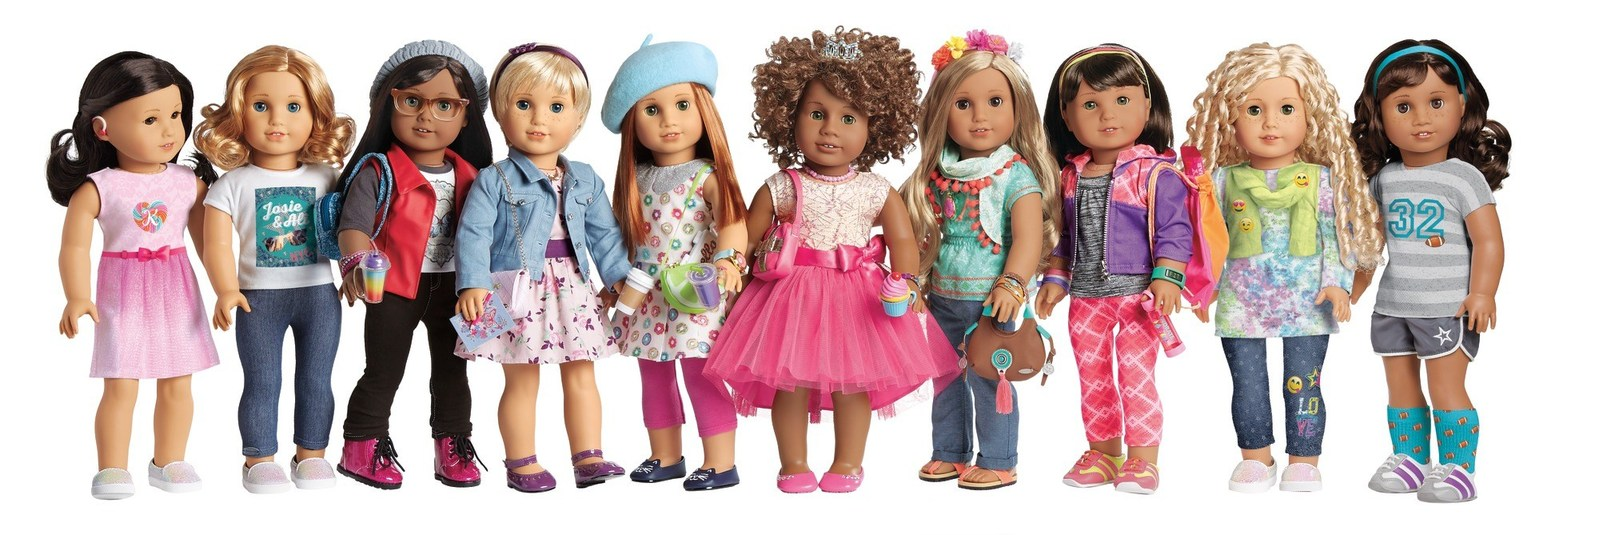 american girl debuts custom doll and apparel making experience with